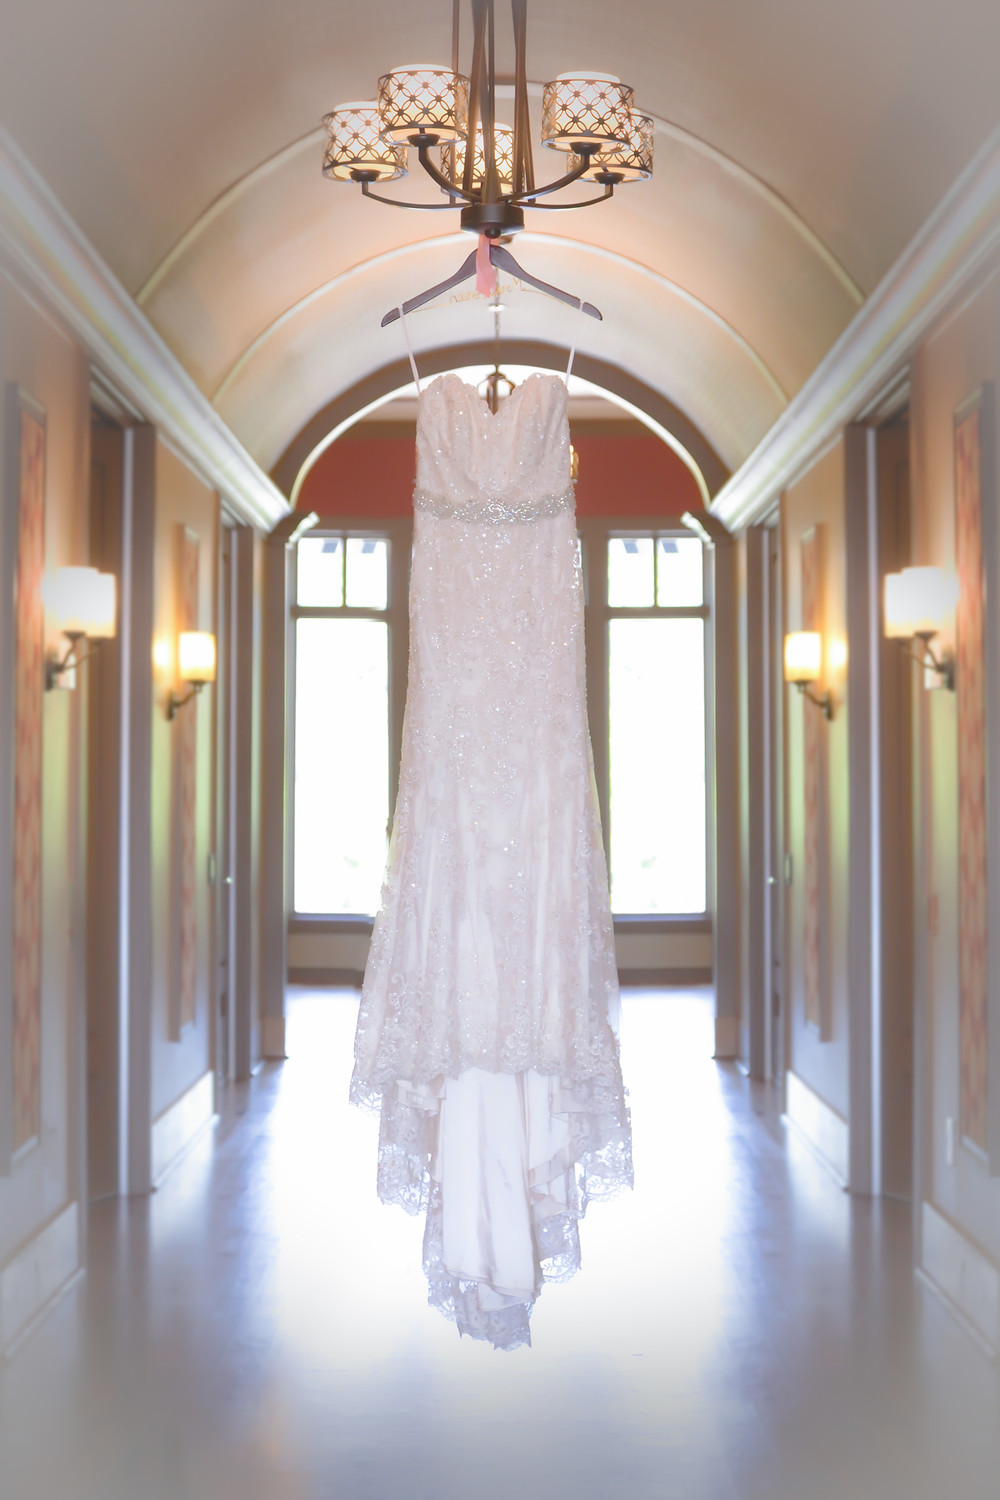 Hanging wedding dress